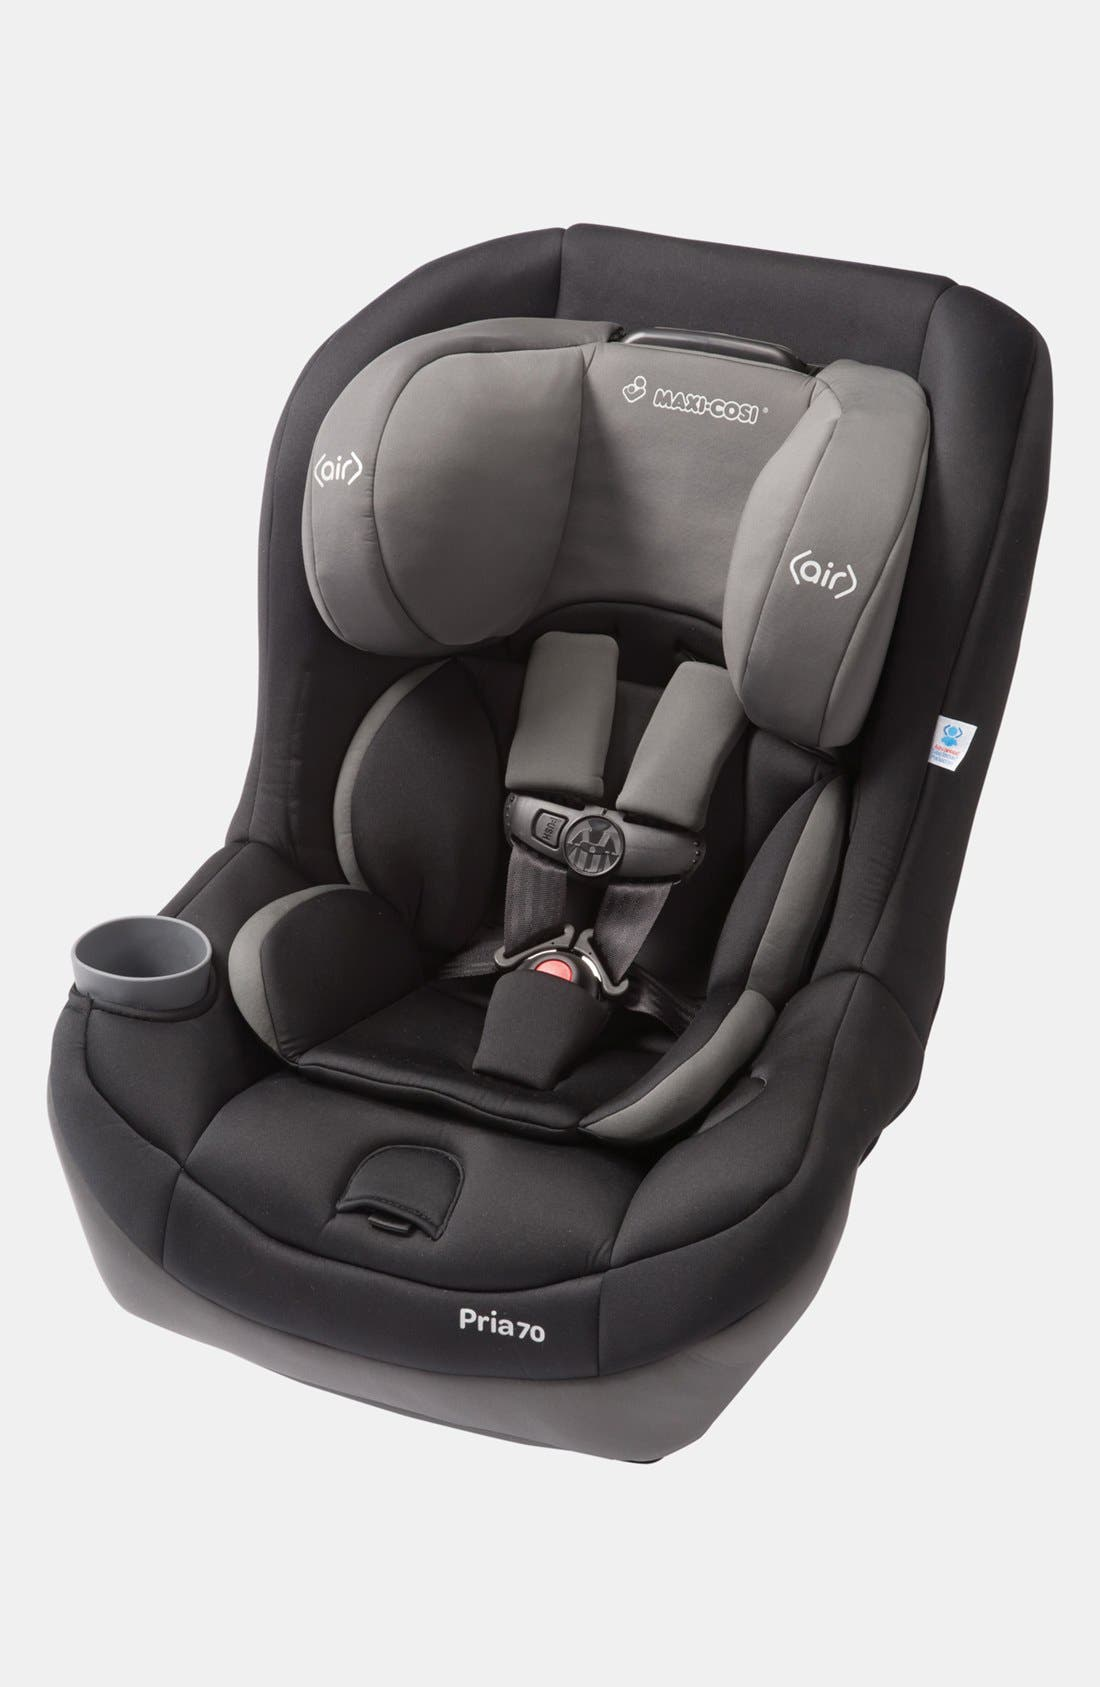 Main Image - Maxi-Cosi® 'Pria™ 70' Car Seat (Baby & Toddler)